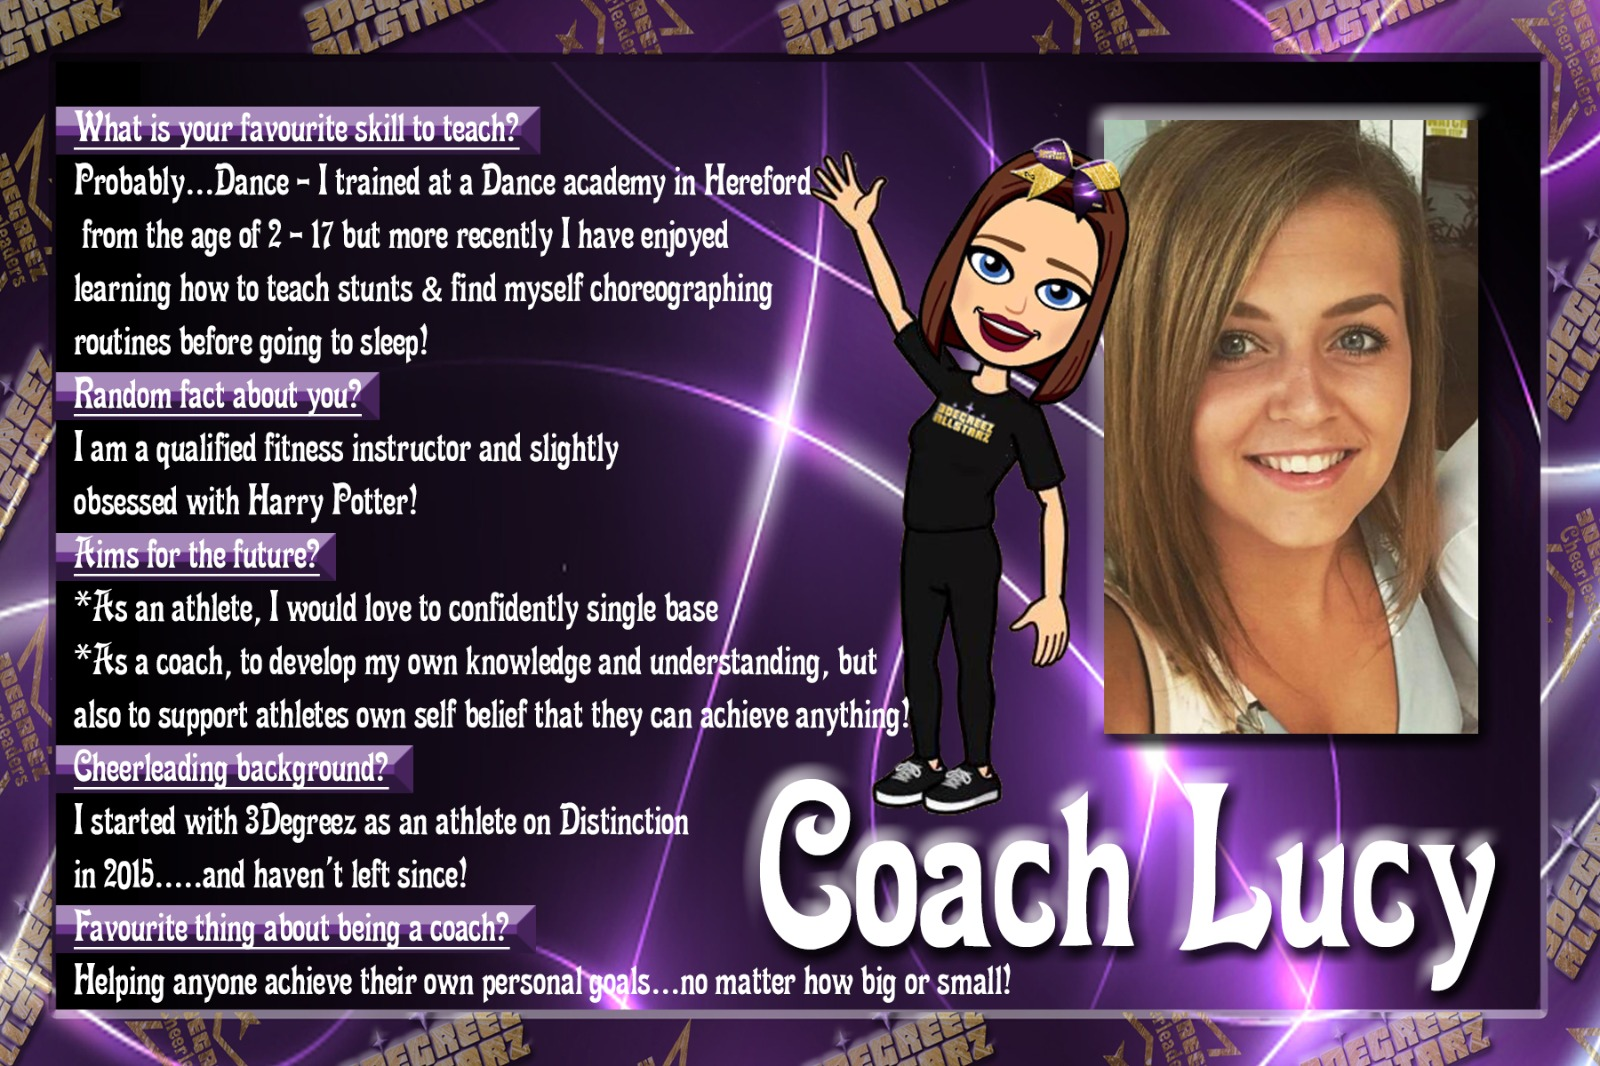 Coach Lucy